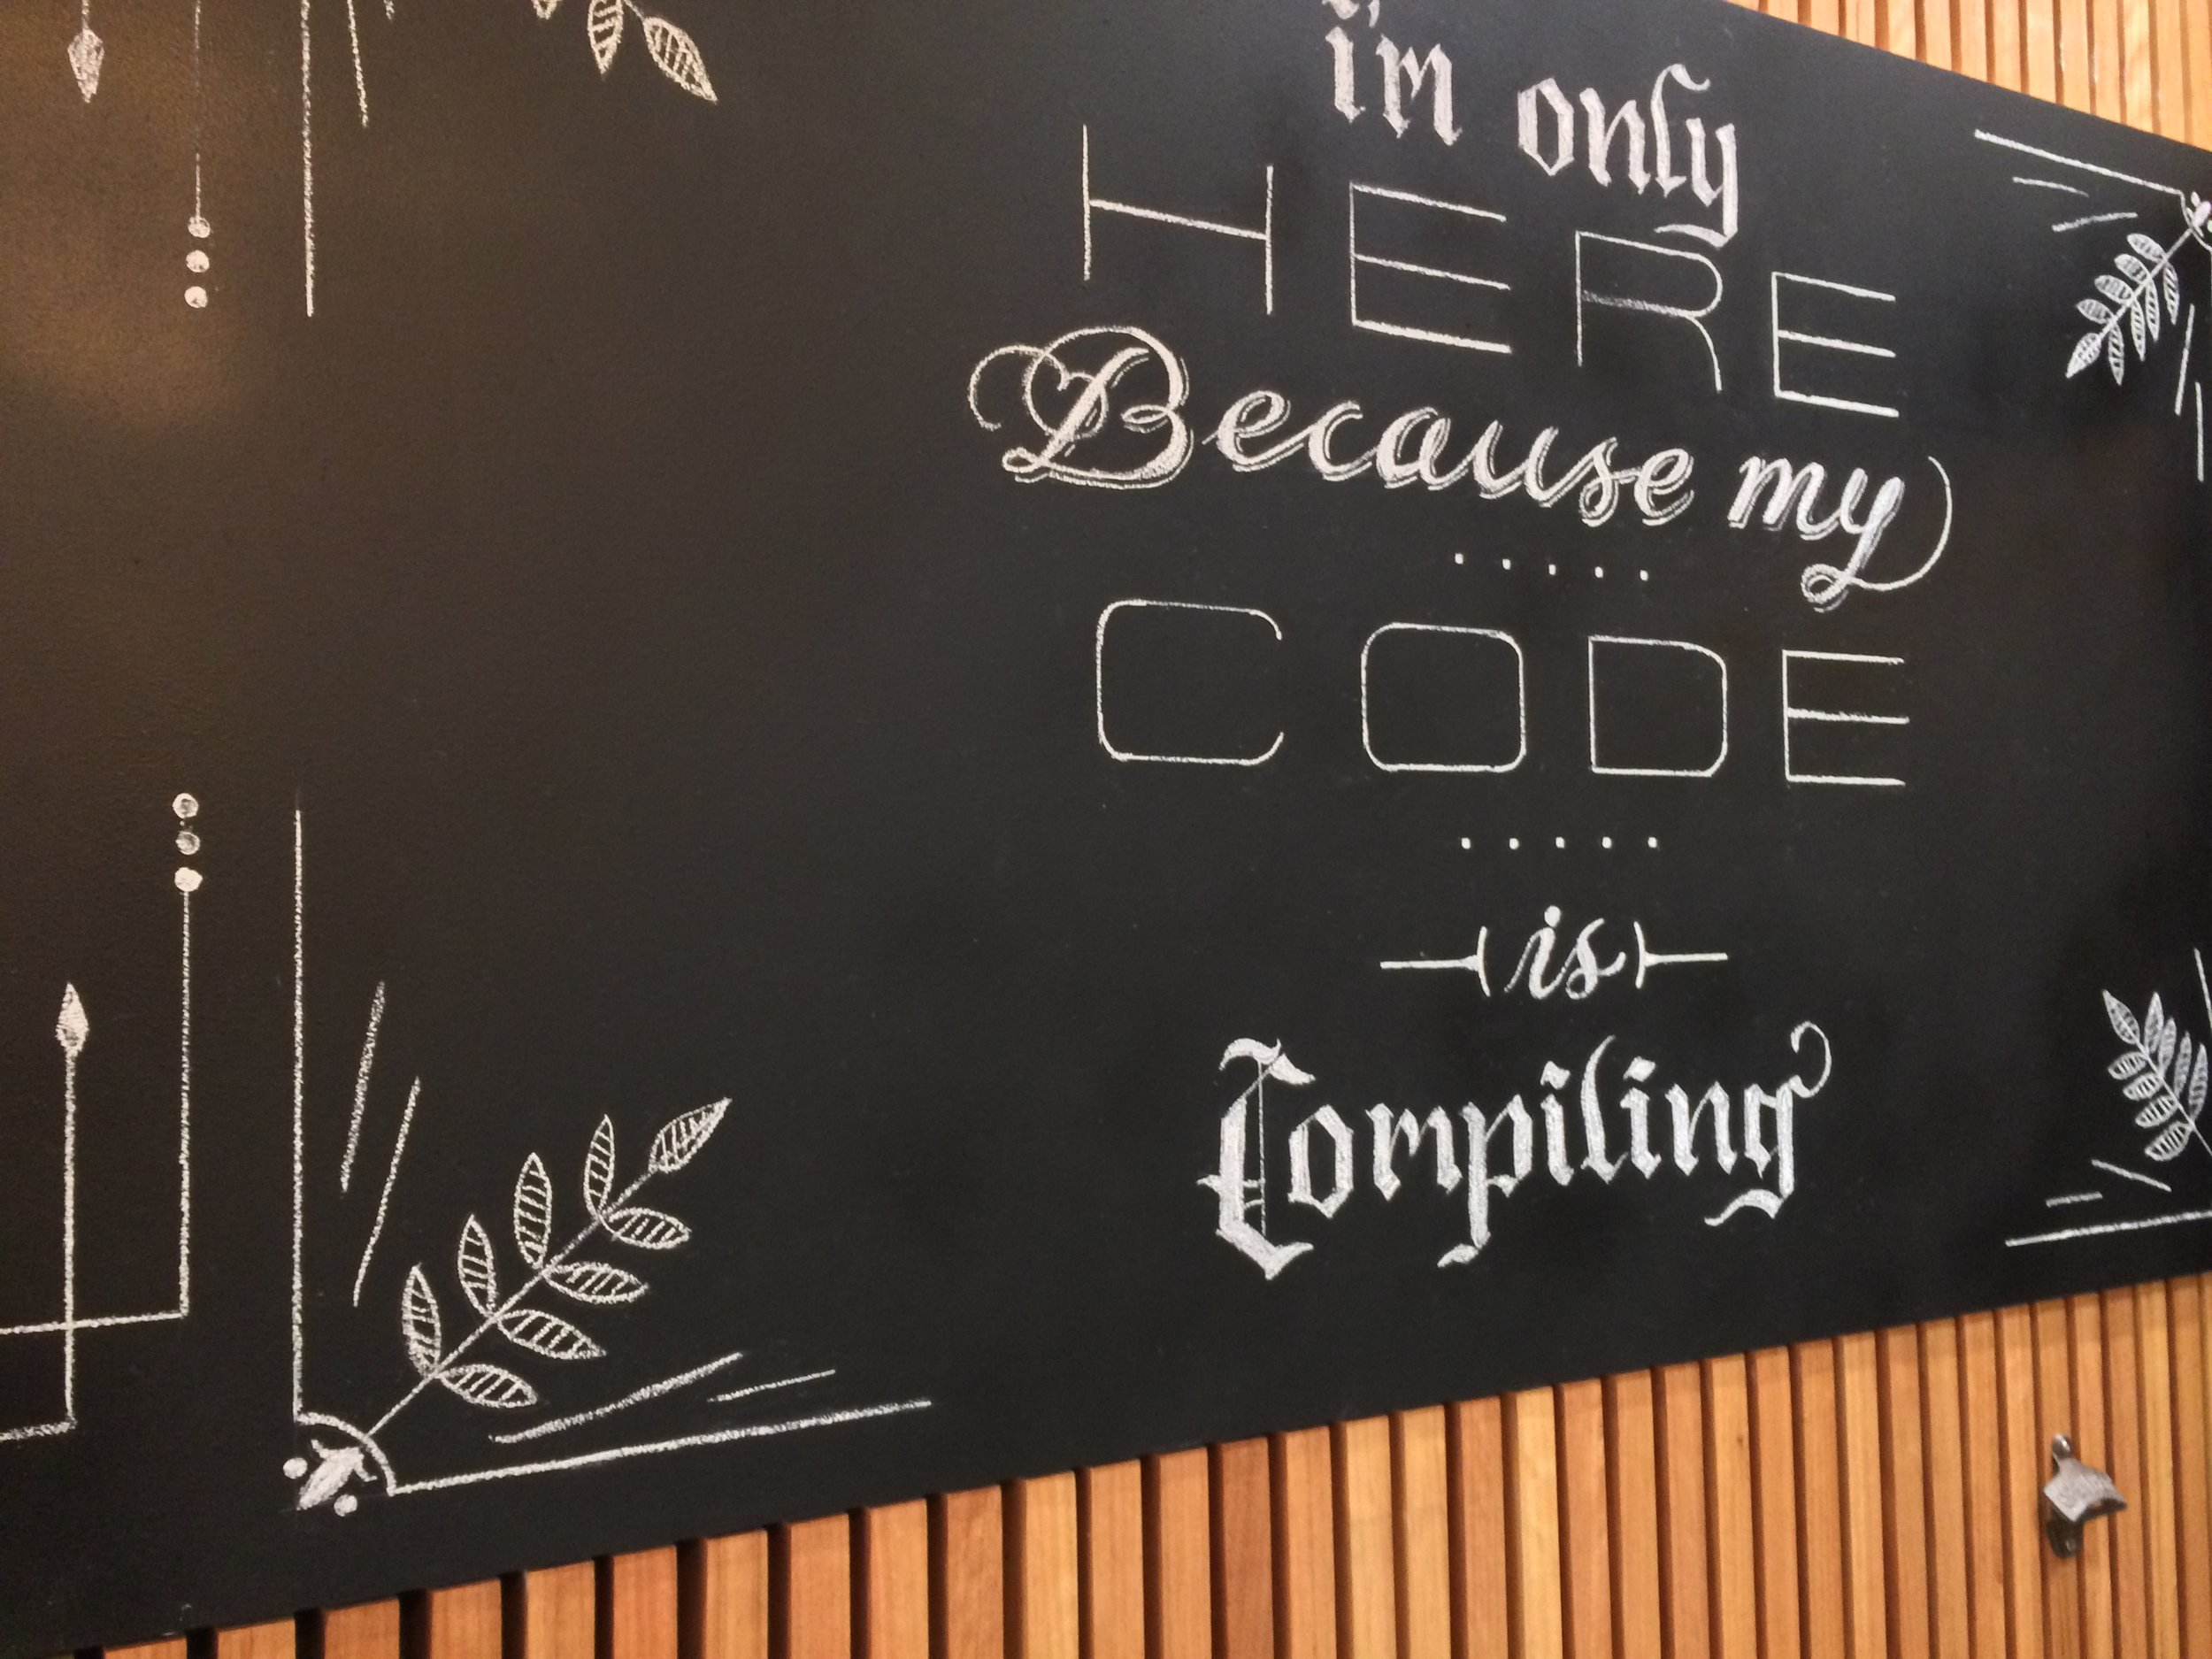 When the bar is in a tech startup office, the quote is as nerdy as they come.